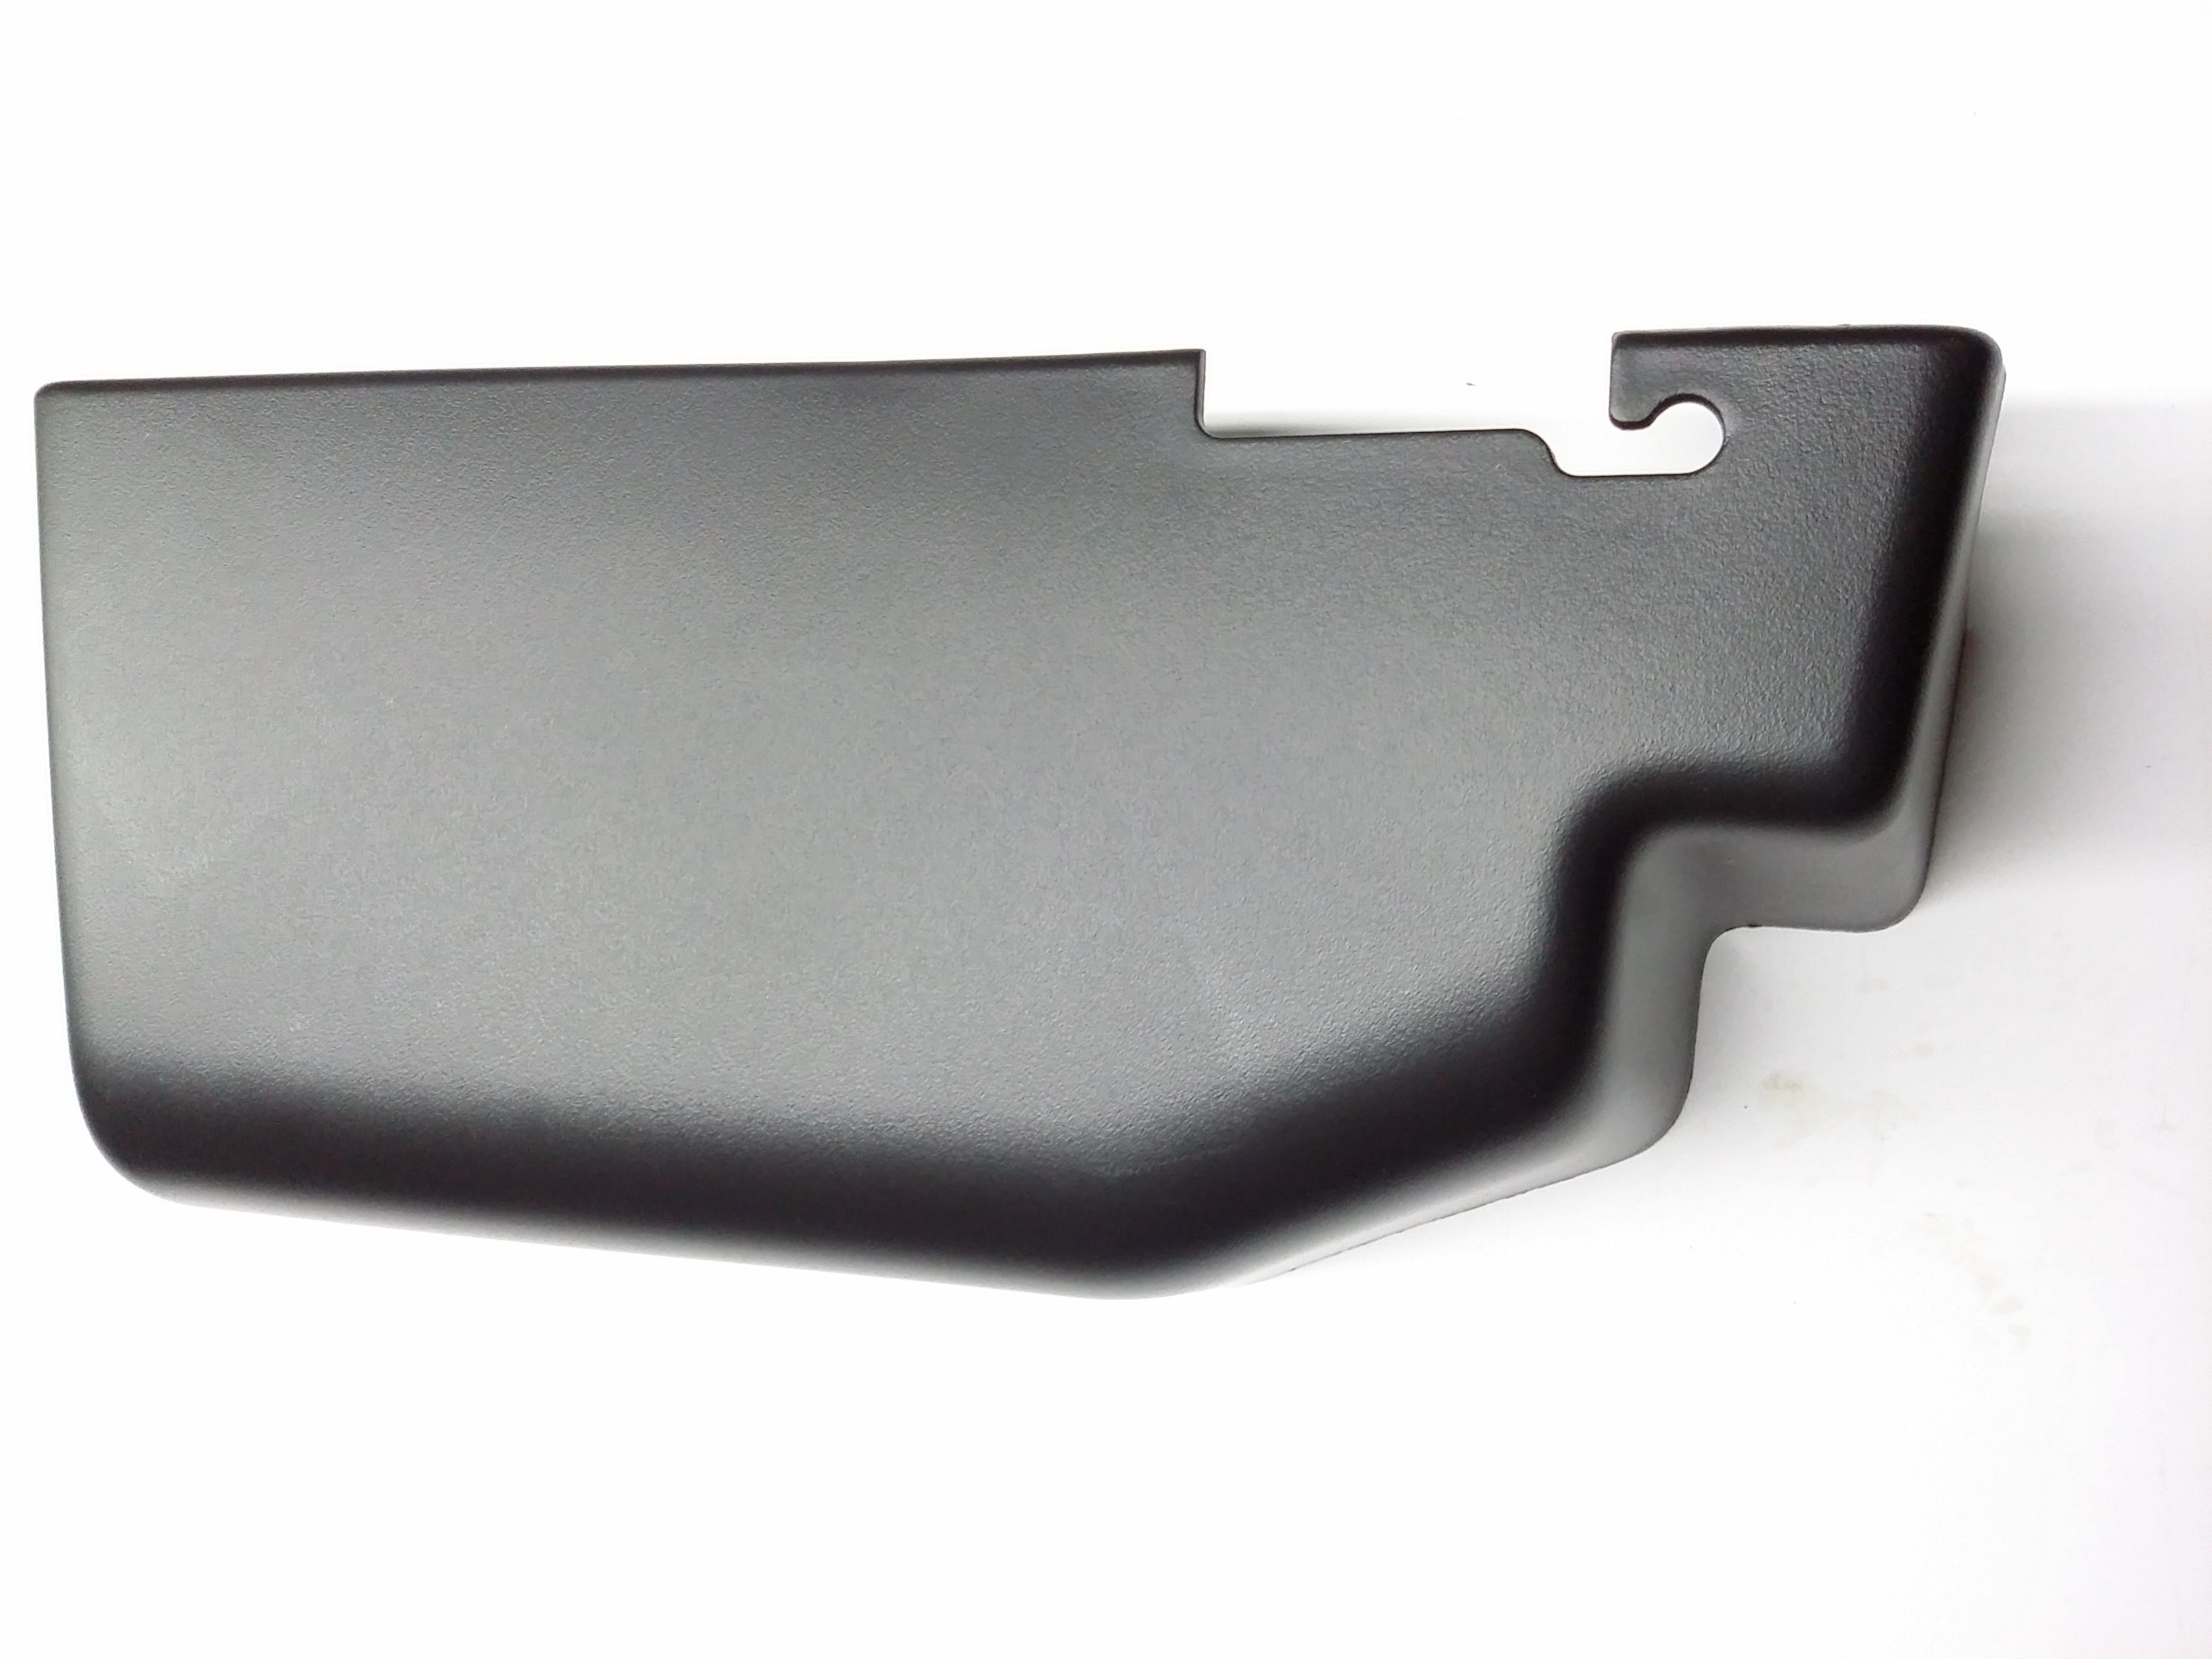 a_20150922_1642128340 search jeep wrangler body \u003e rear wiper and washer system  at nearapp.co